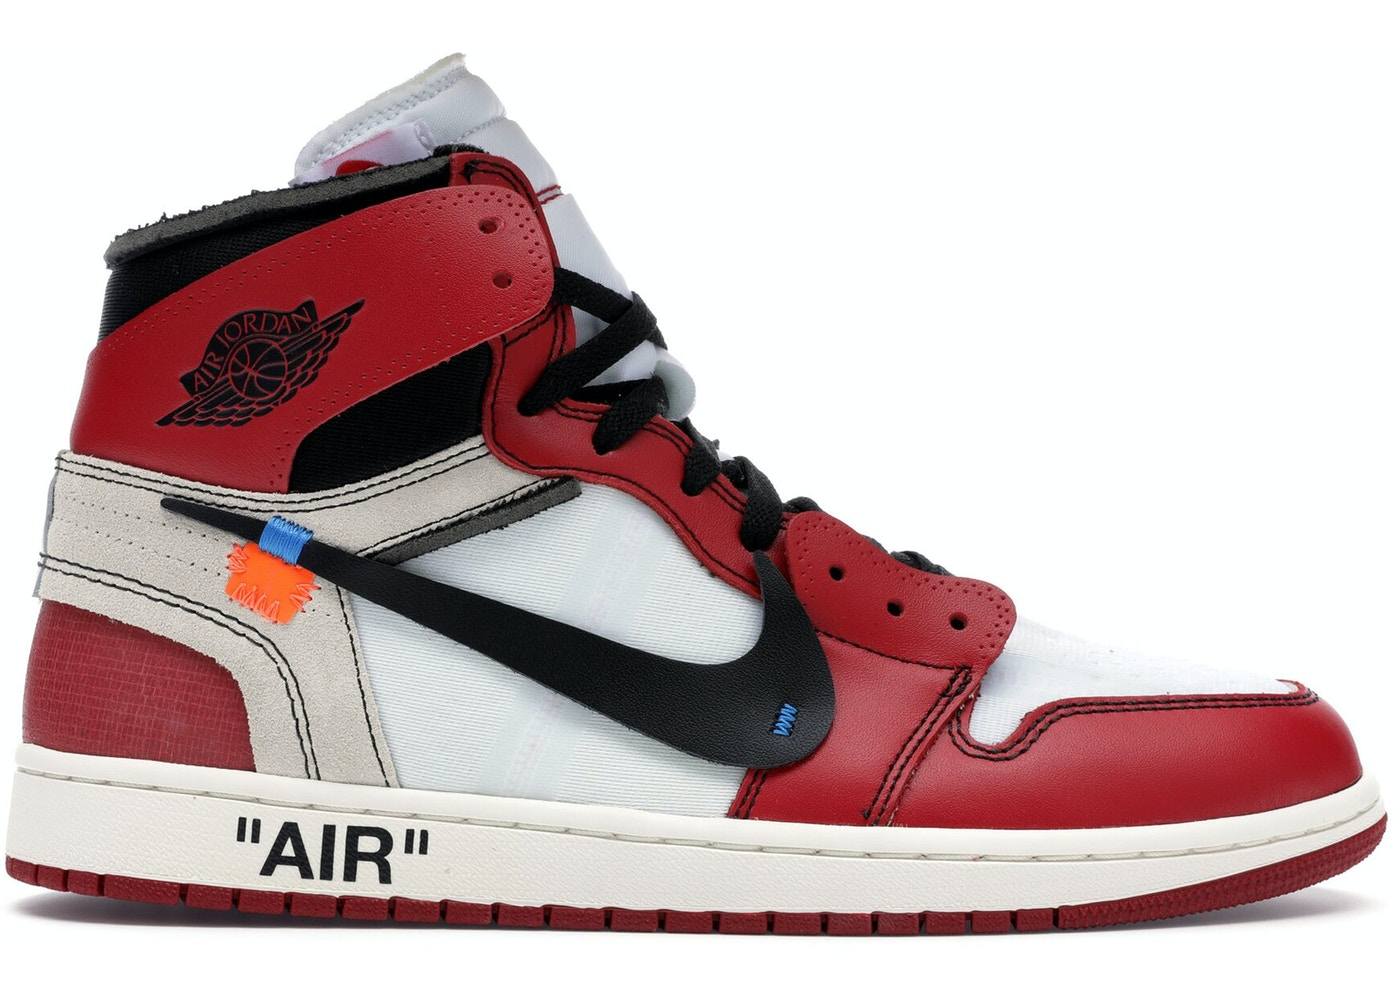 e41a870fa7b8 Jordan 1 Retro High Off-White Chicago